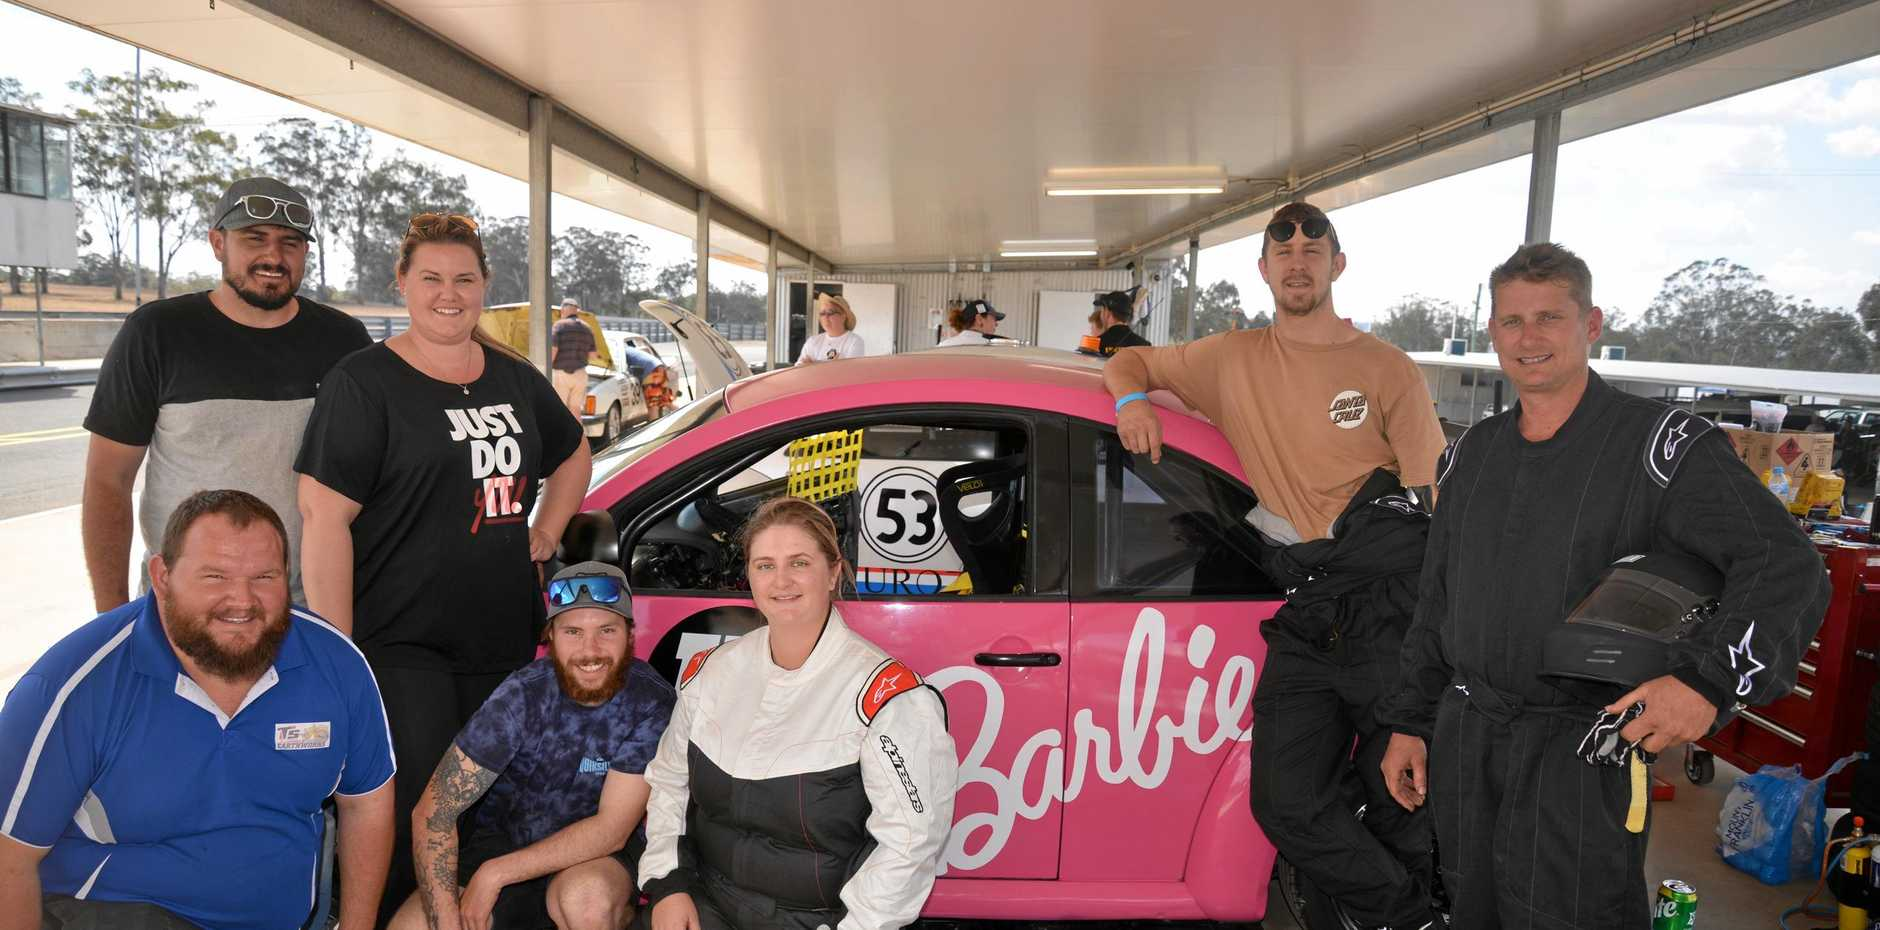 BARBIE TEAM: (Front) Taylor Sansby, Nick Nelson, Adrienne Doherty, (back) Brodee and Eva Gray, (right) John Mason and Tim Sewell are in their first 24 Hours of Lemons at Morgan Park which goes from 3pm Friday to 3pm Saturday.